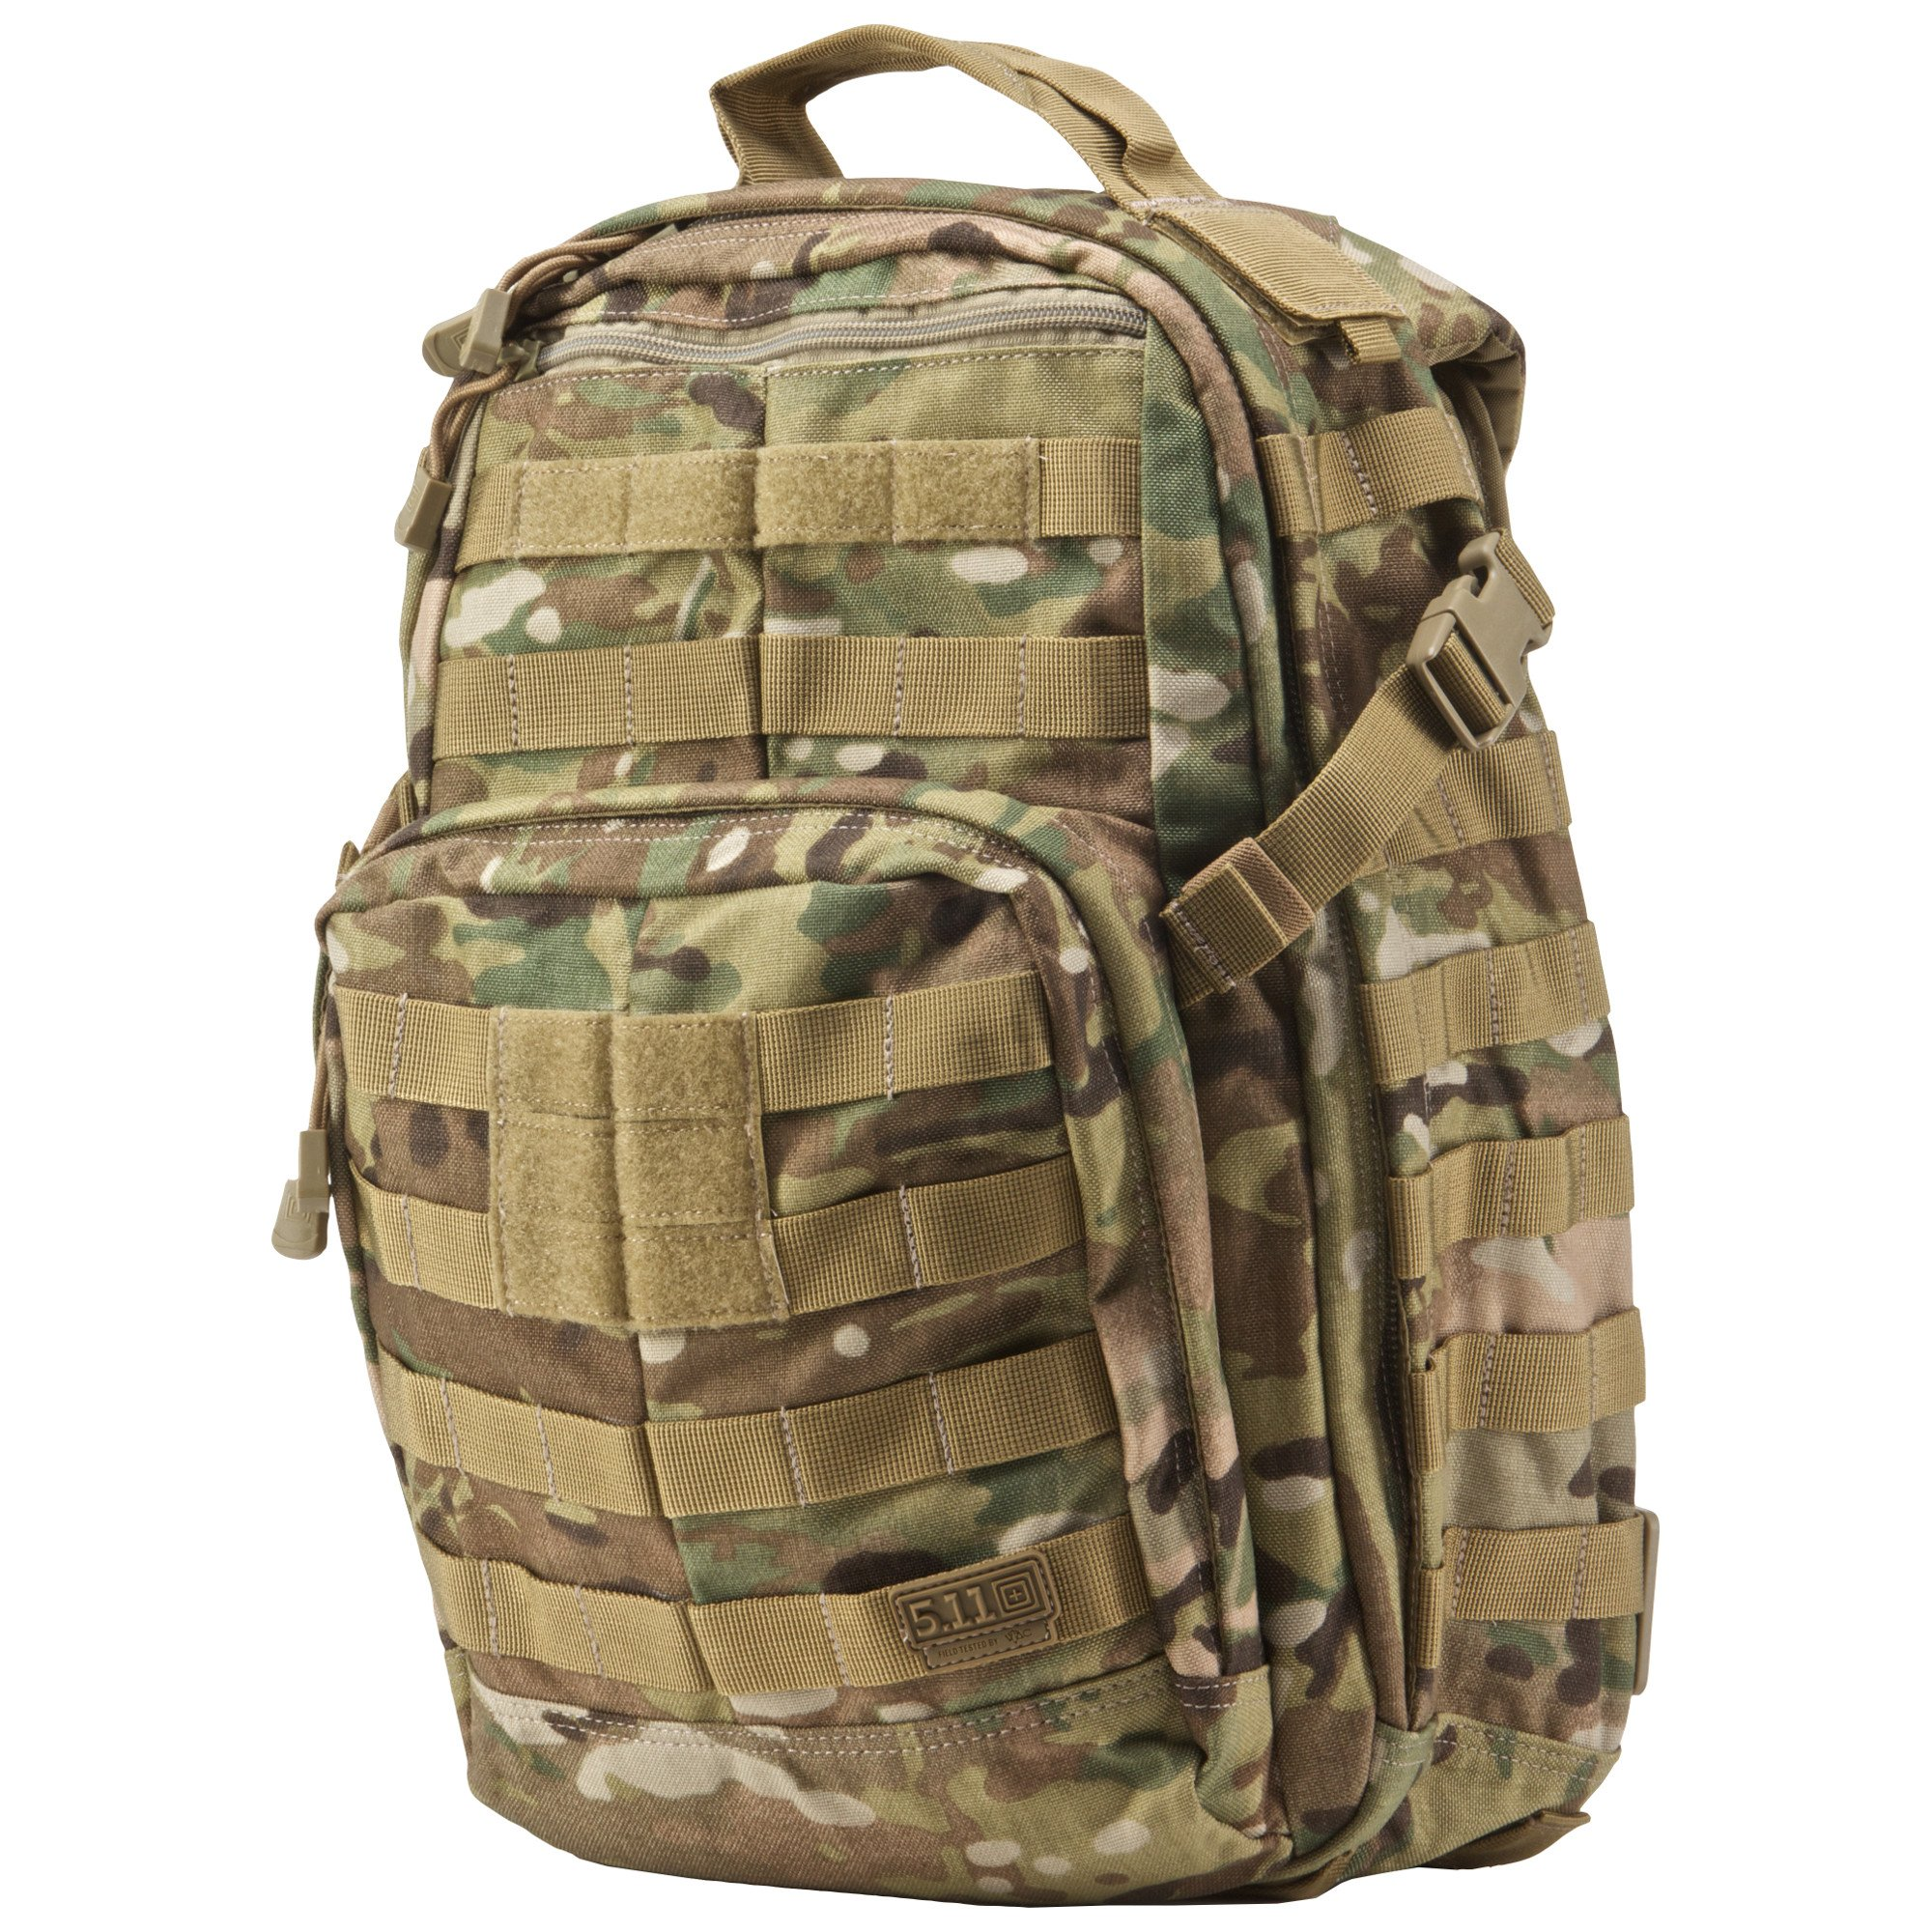 5.11 RUSH12 Tactical Military Assault Molle Backpack, Bug Out Rucksack Bag, Small, Style 56892, Multicam by 5.11 (Image #3)